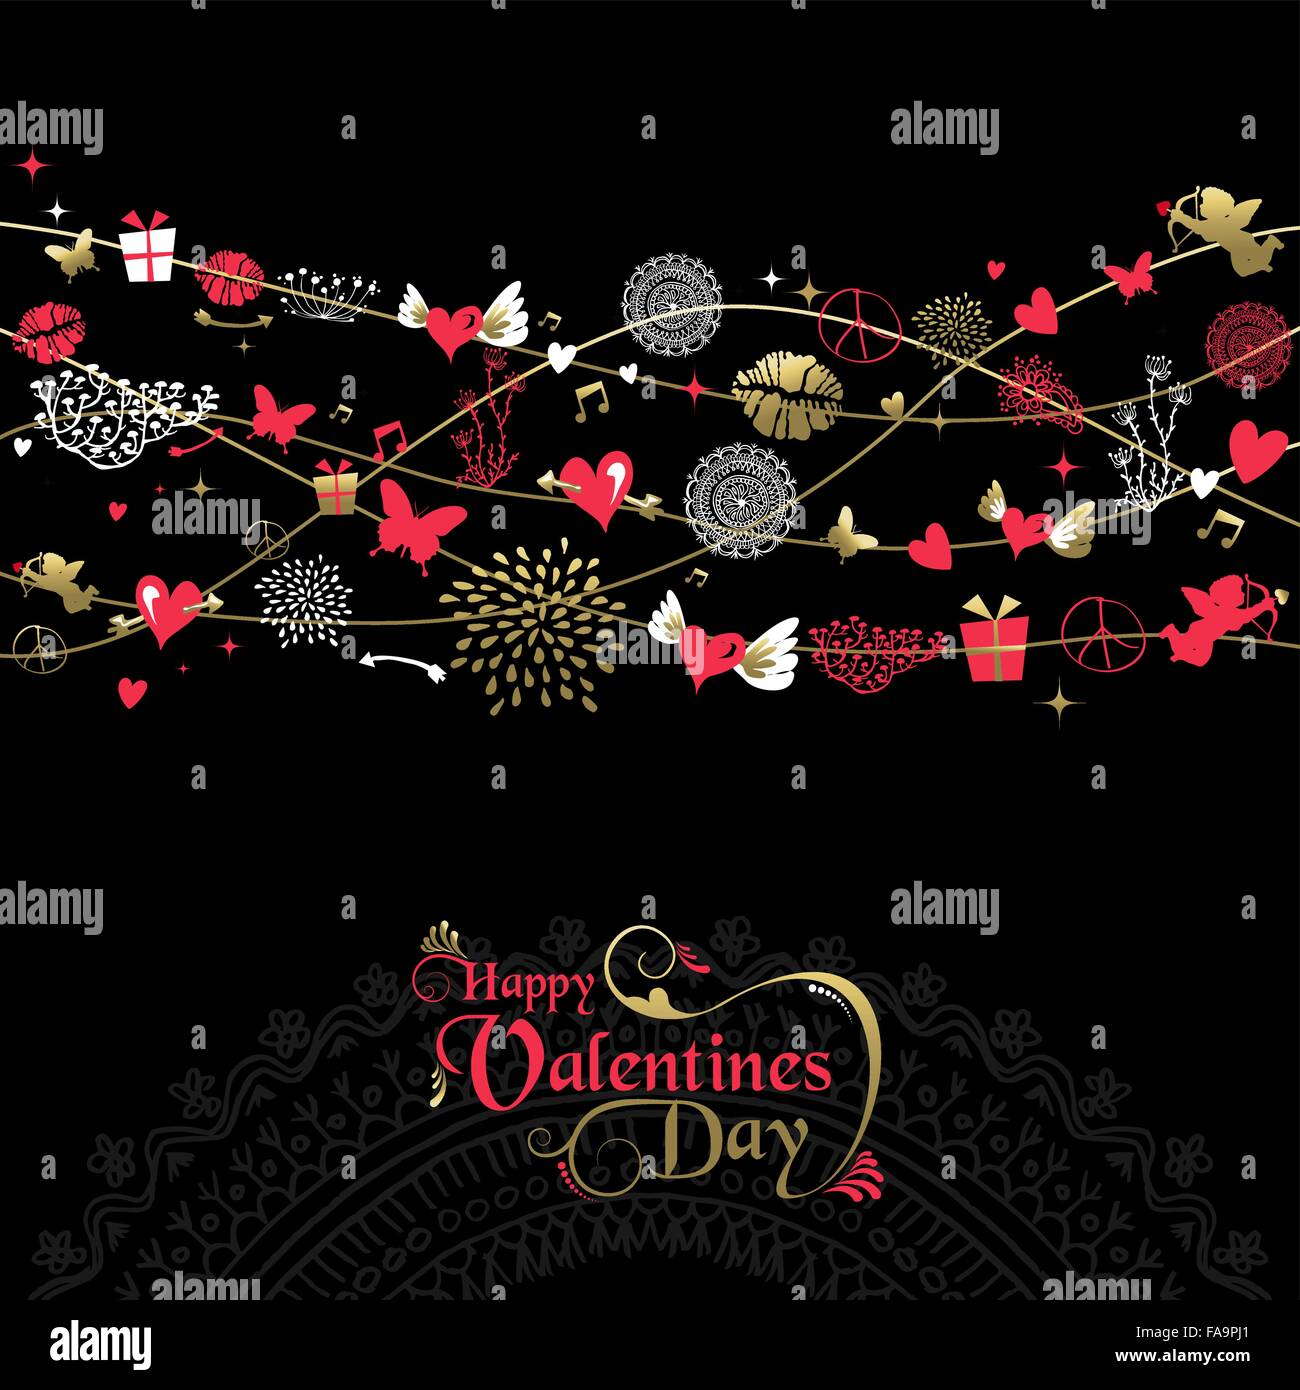 Happy valentines day greeting card background design vintage style happy valentines day greeting card background design vintage style icon decoration with text label in gold and pink eps10 m4hsunfo